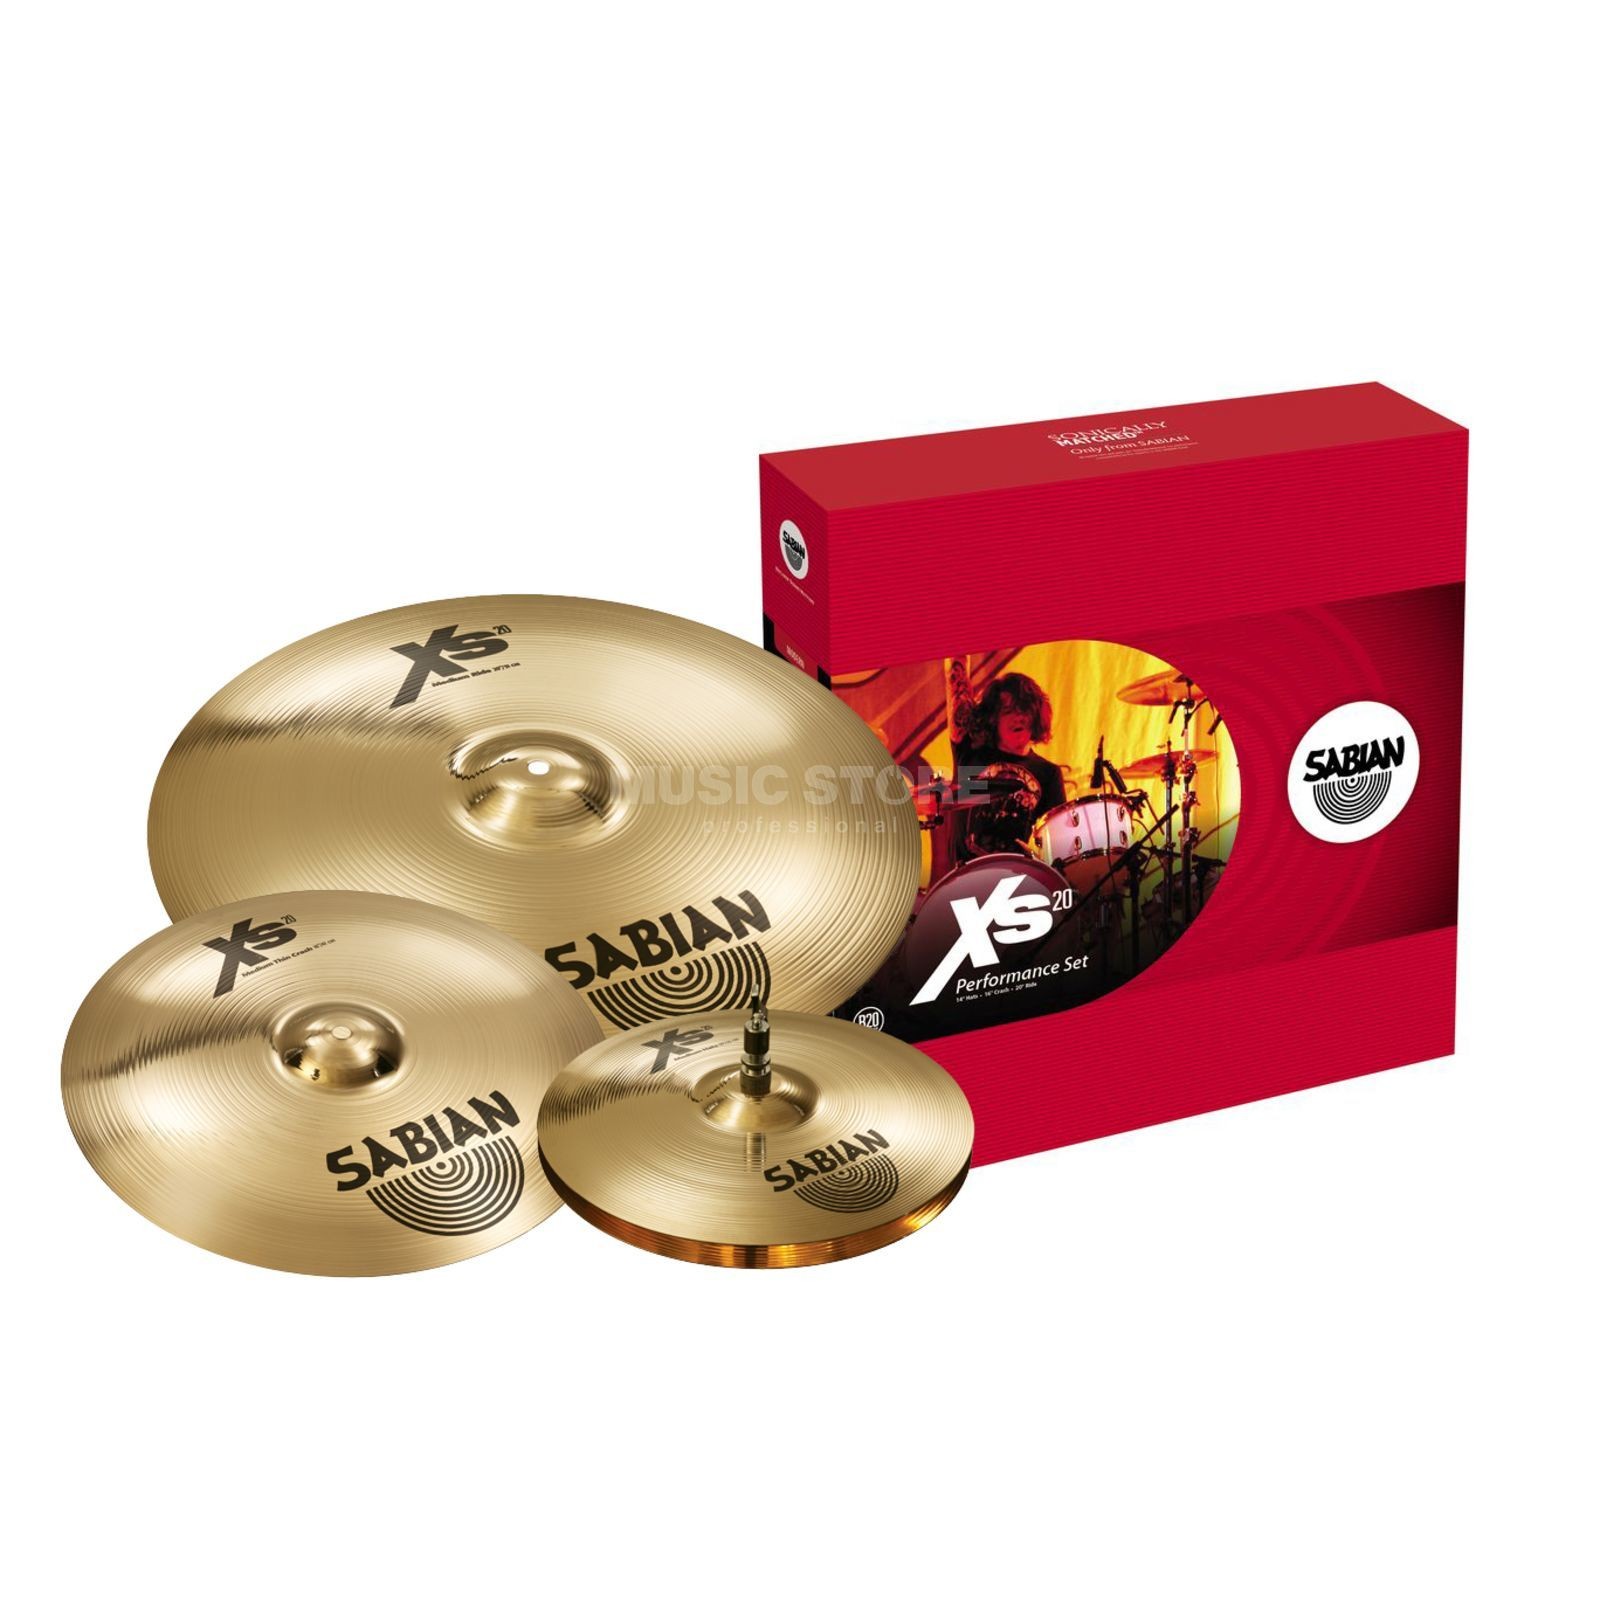 Sabian XS20 Cymbal Set Performance, Brilliant Finish Product Image